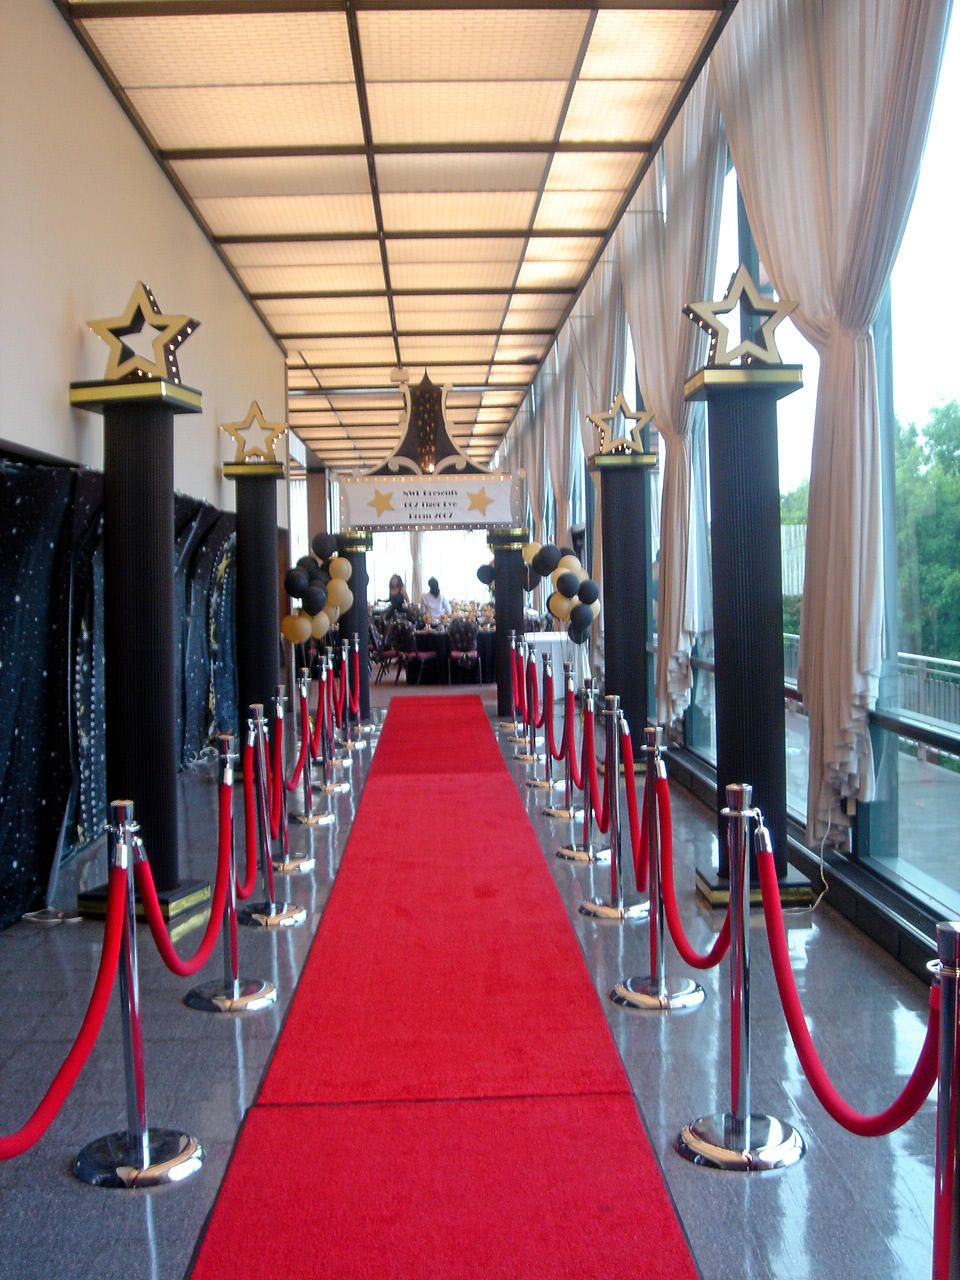 Google ventures theme - Hollywood Stanchions Google Search